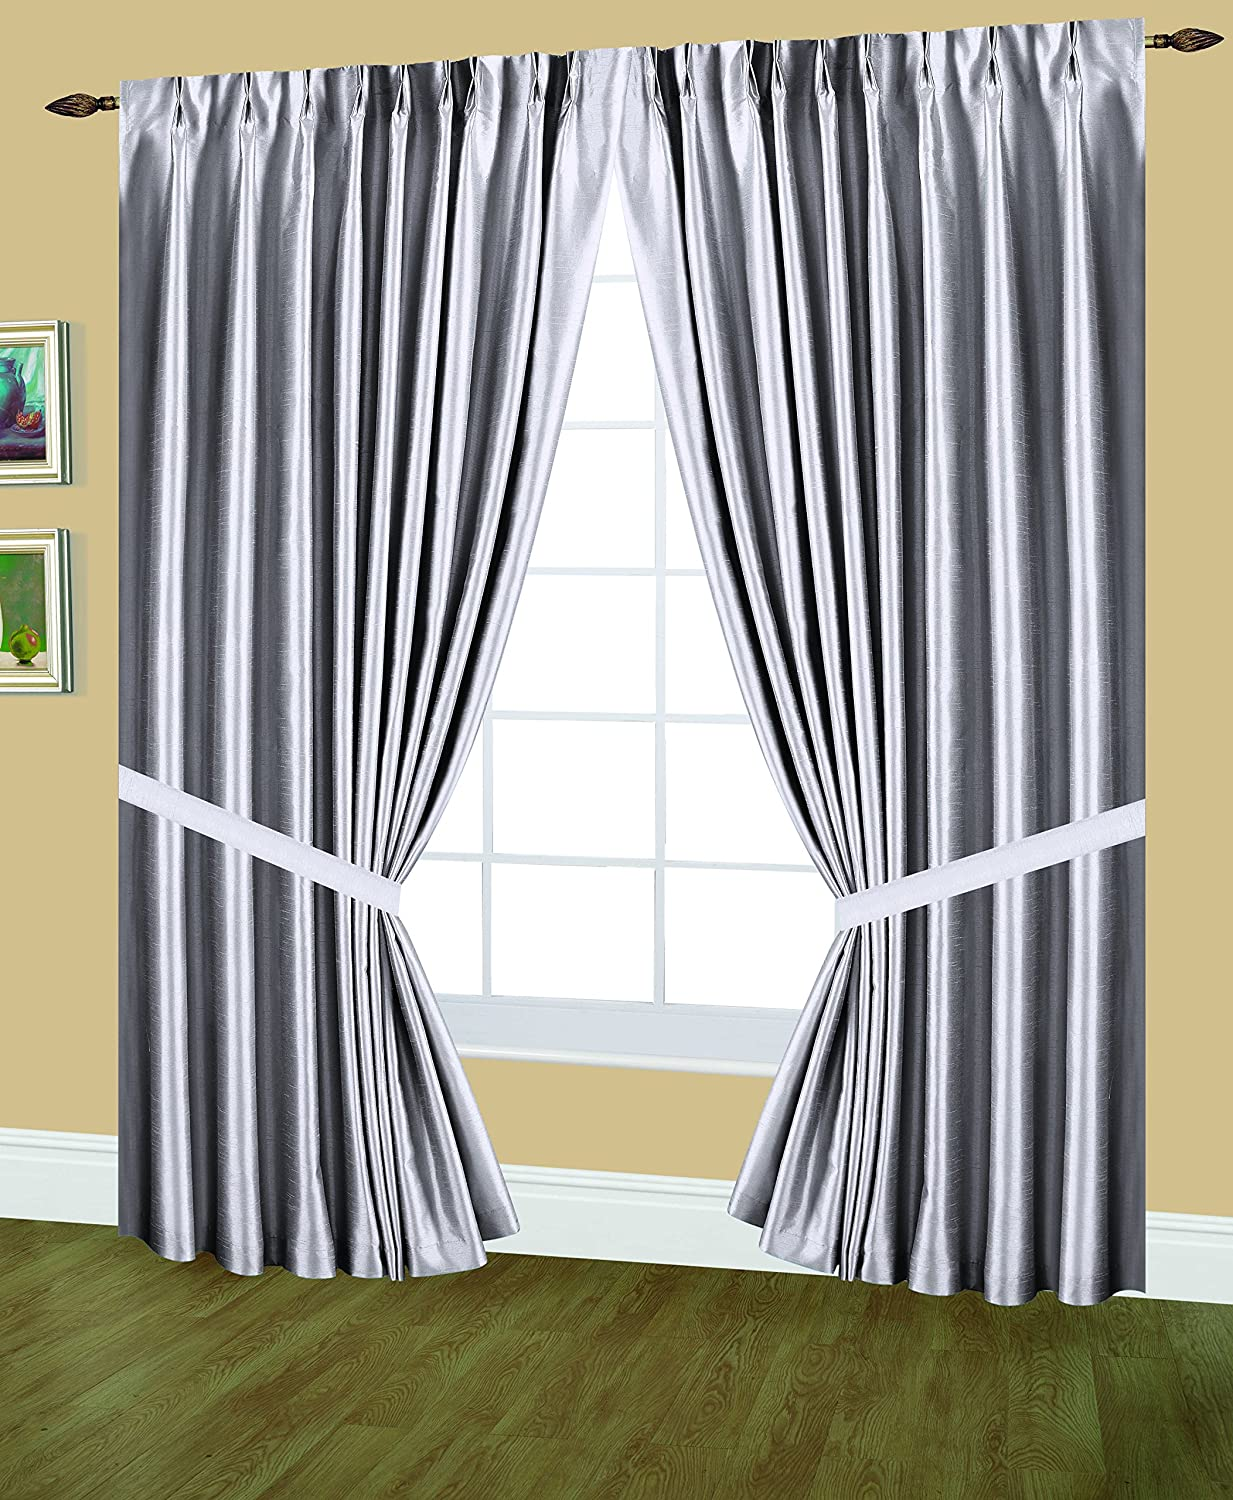 Silver 96 by 84-Inch Editex Home Textiles Elaine Lined Pinch Pleated Window Curtain